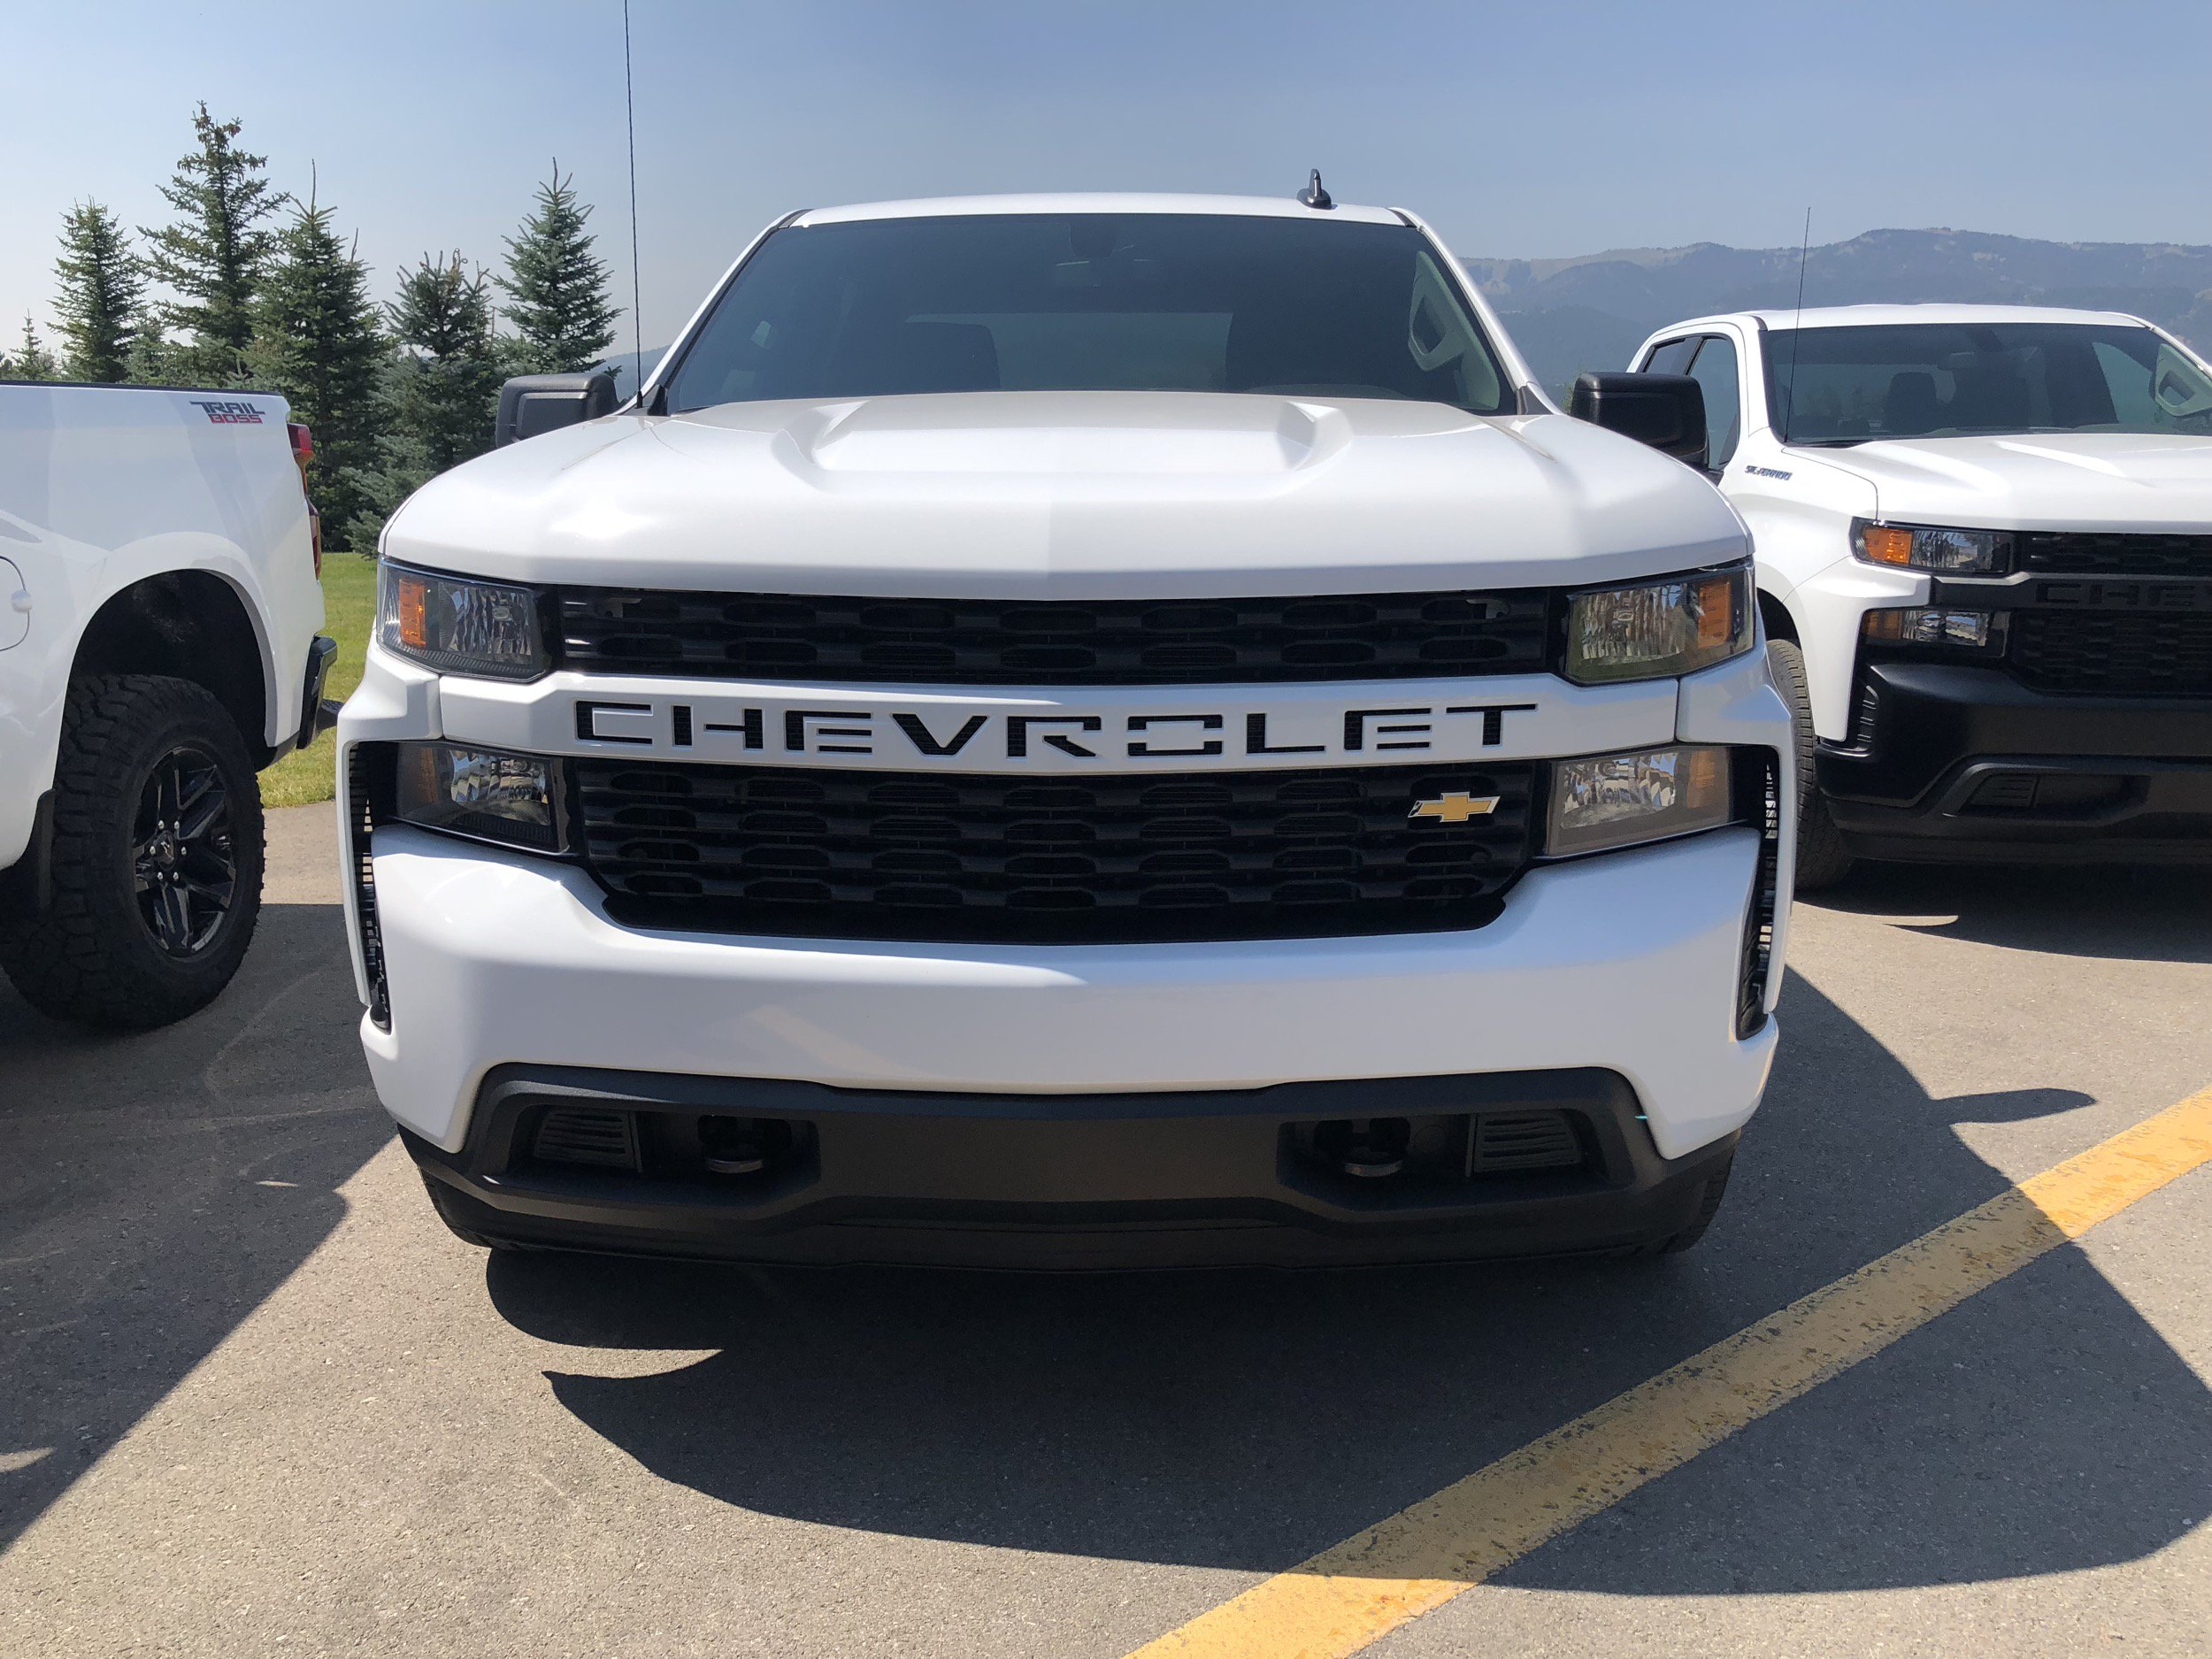 35 New 2020 Chevy Silverado 1500 Images